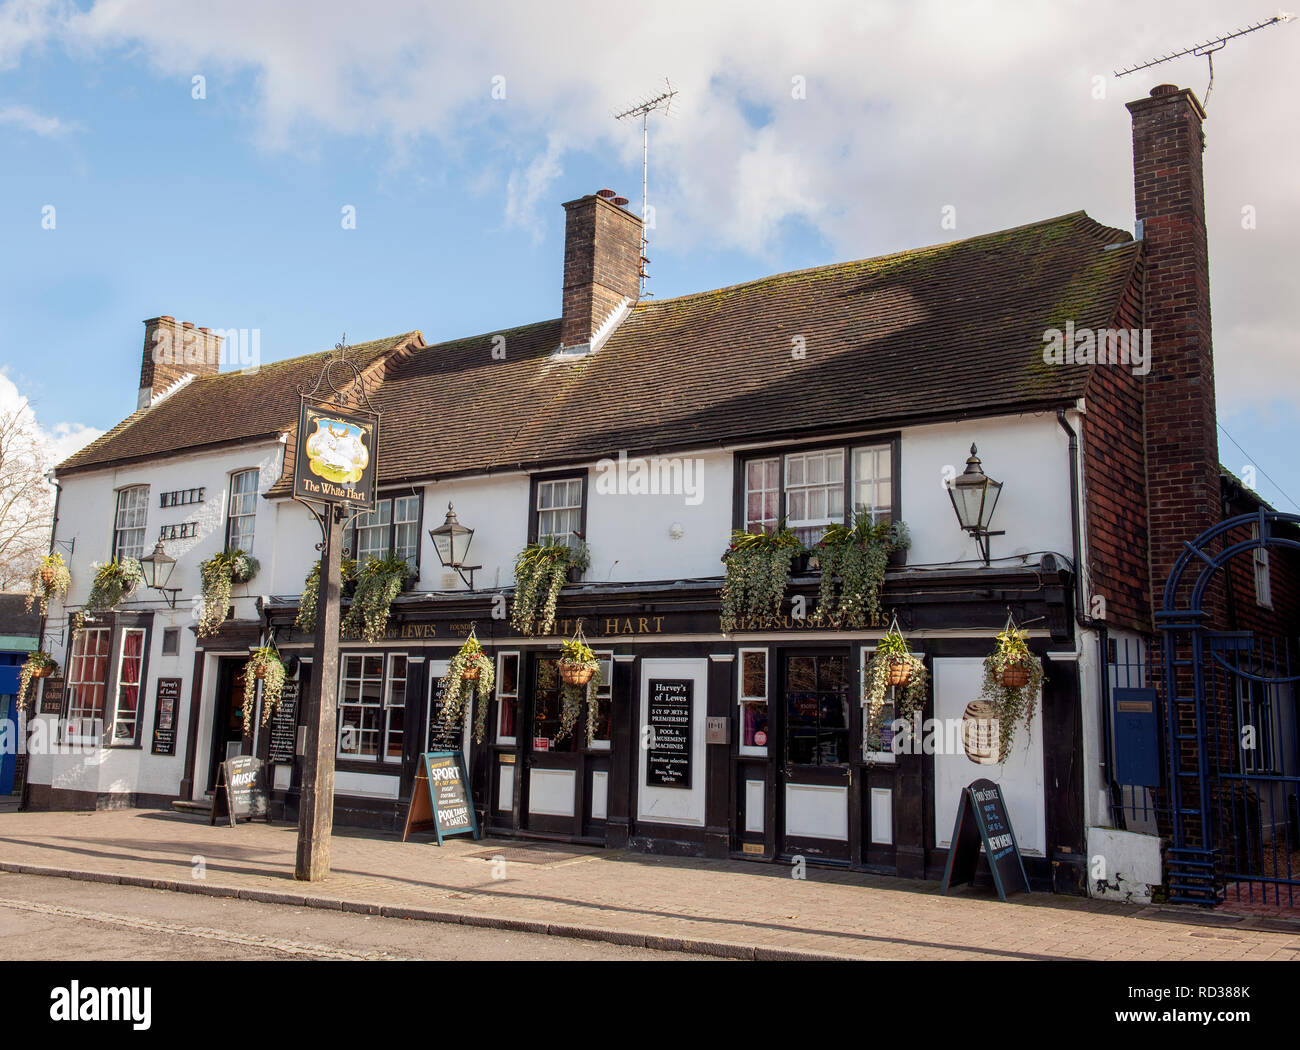 The White Hart public house, High Street, Crawley, West Sussex, England, UK. - Stock Image